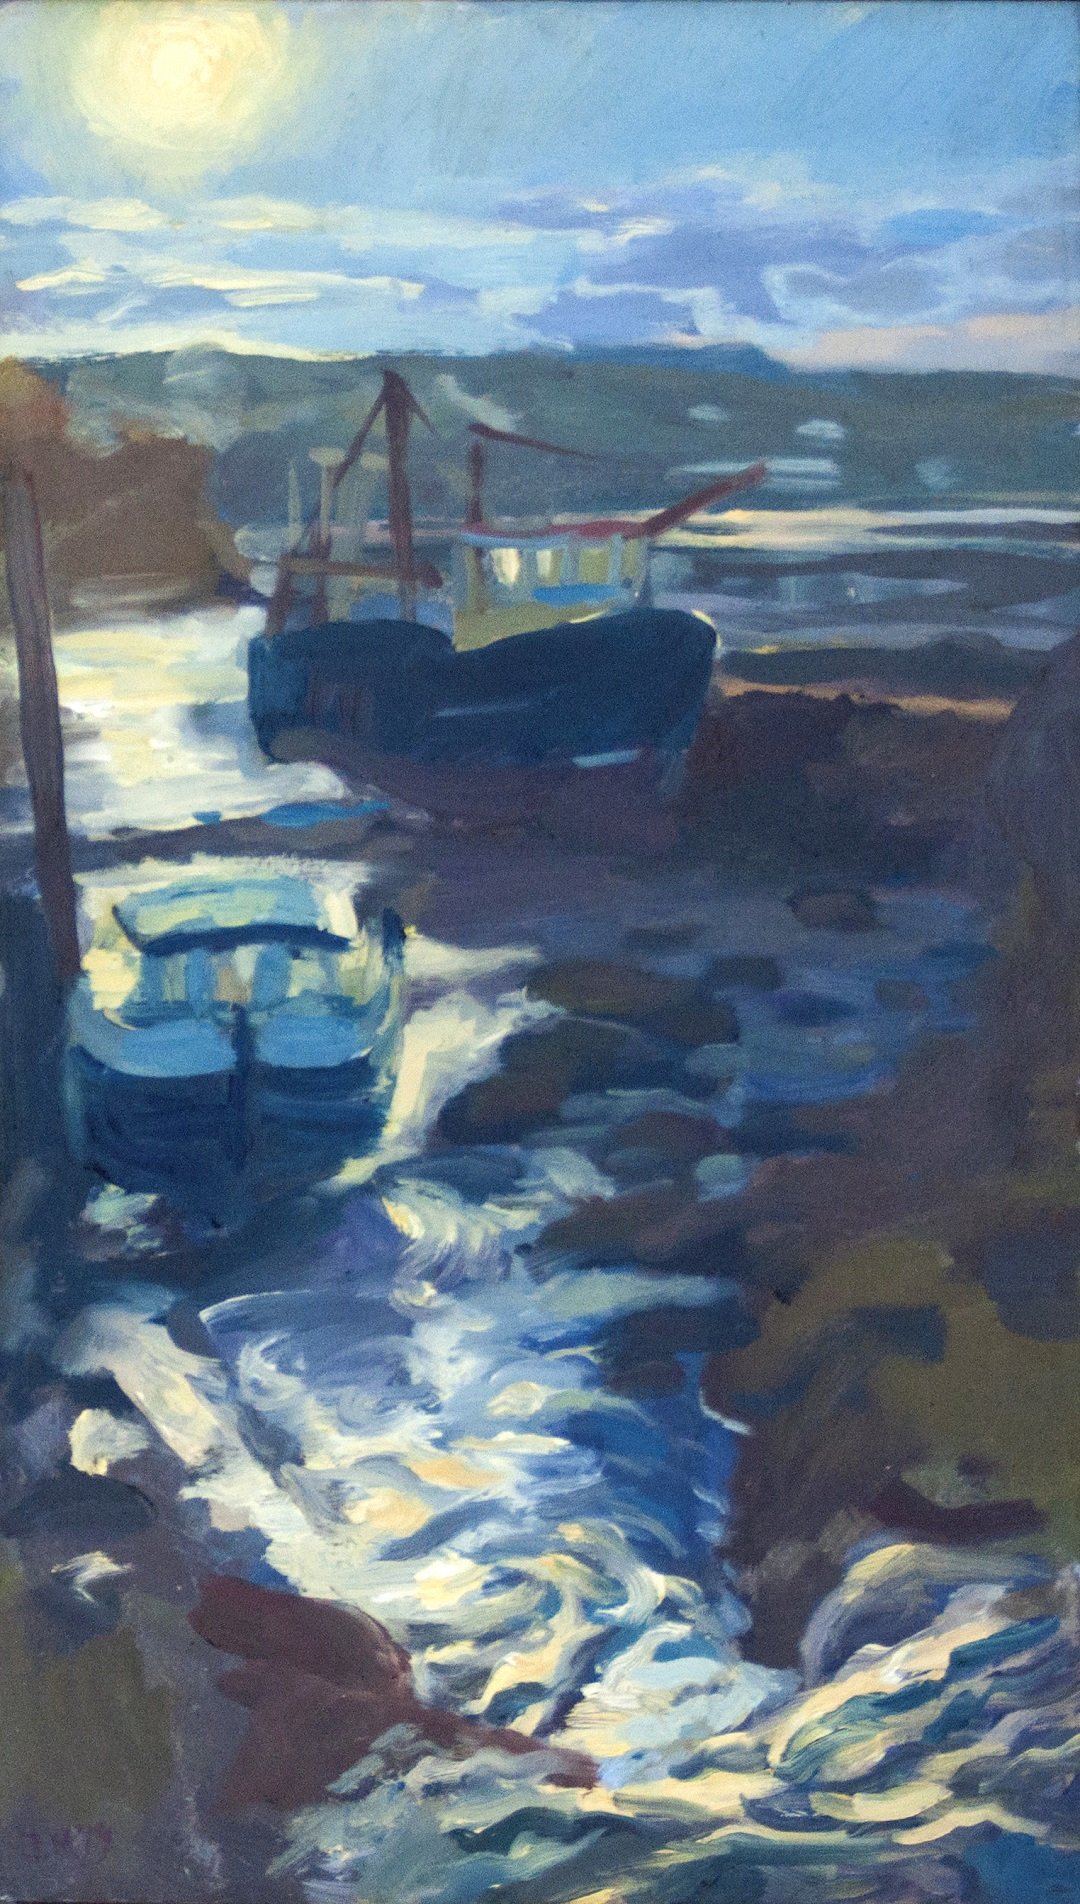 Against the light at Galmpton Creek, 2019 James Murch Oil on panel, 28 x 48 cm